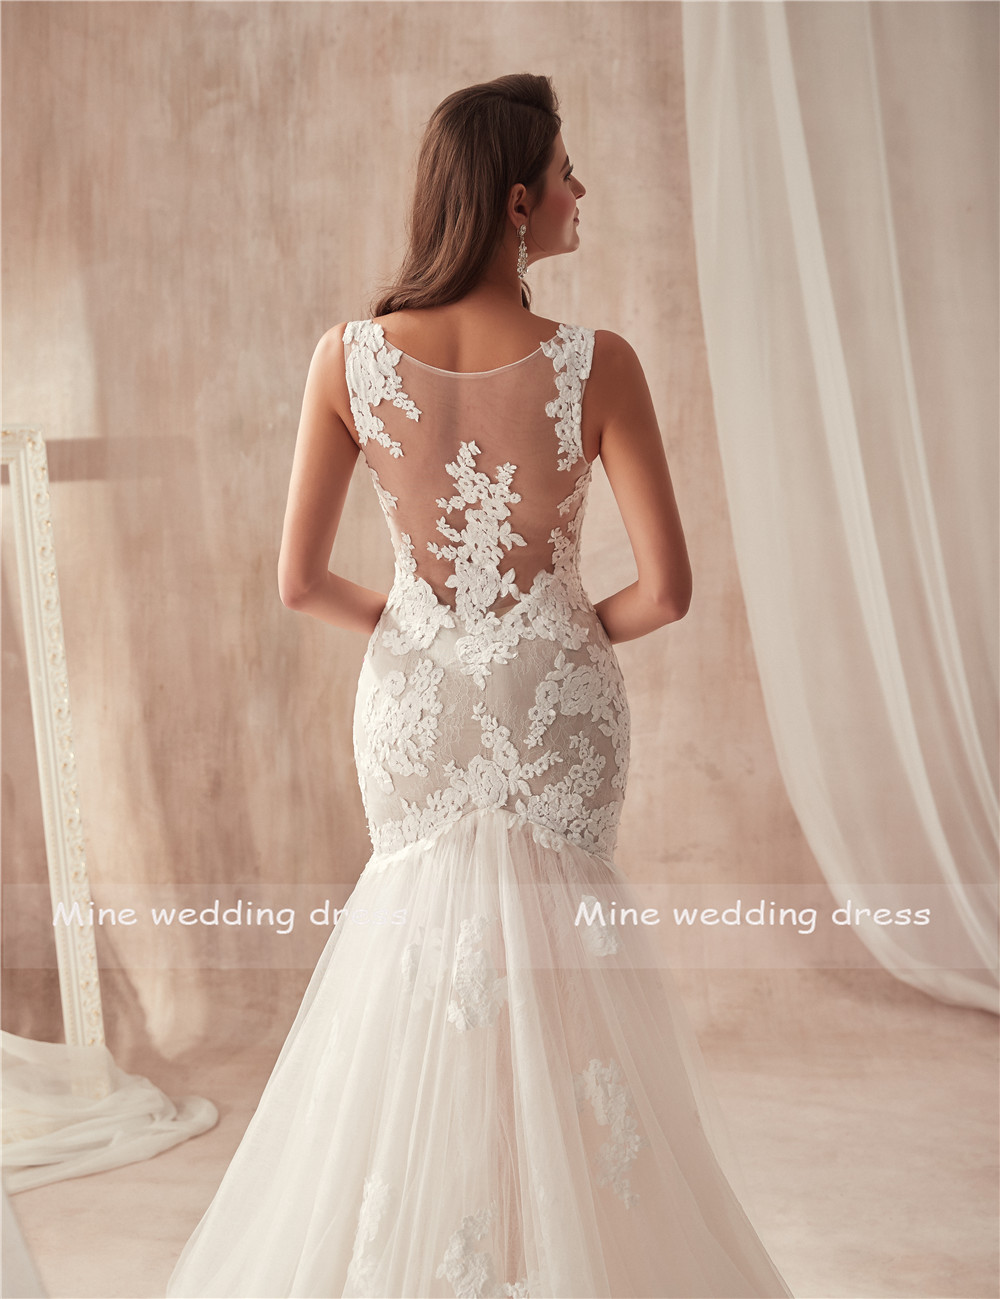 Image 5 - V neck Nude Mermaid Wedding Dress Open Back with Lace See Through Sexy Bridal Gowns vestidos de noiva-in Wedding Dresses from Weddings & Events